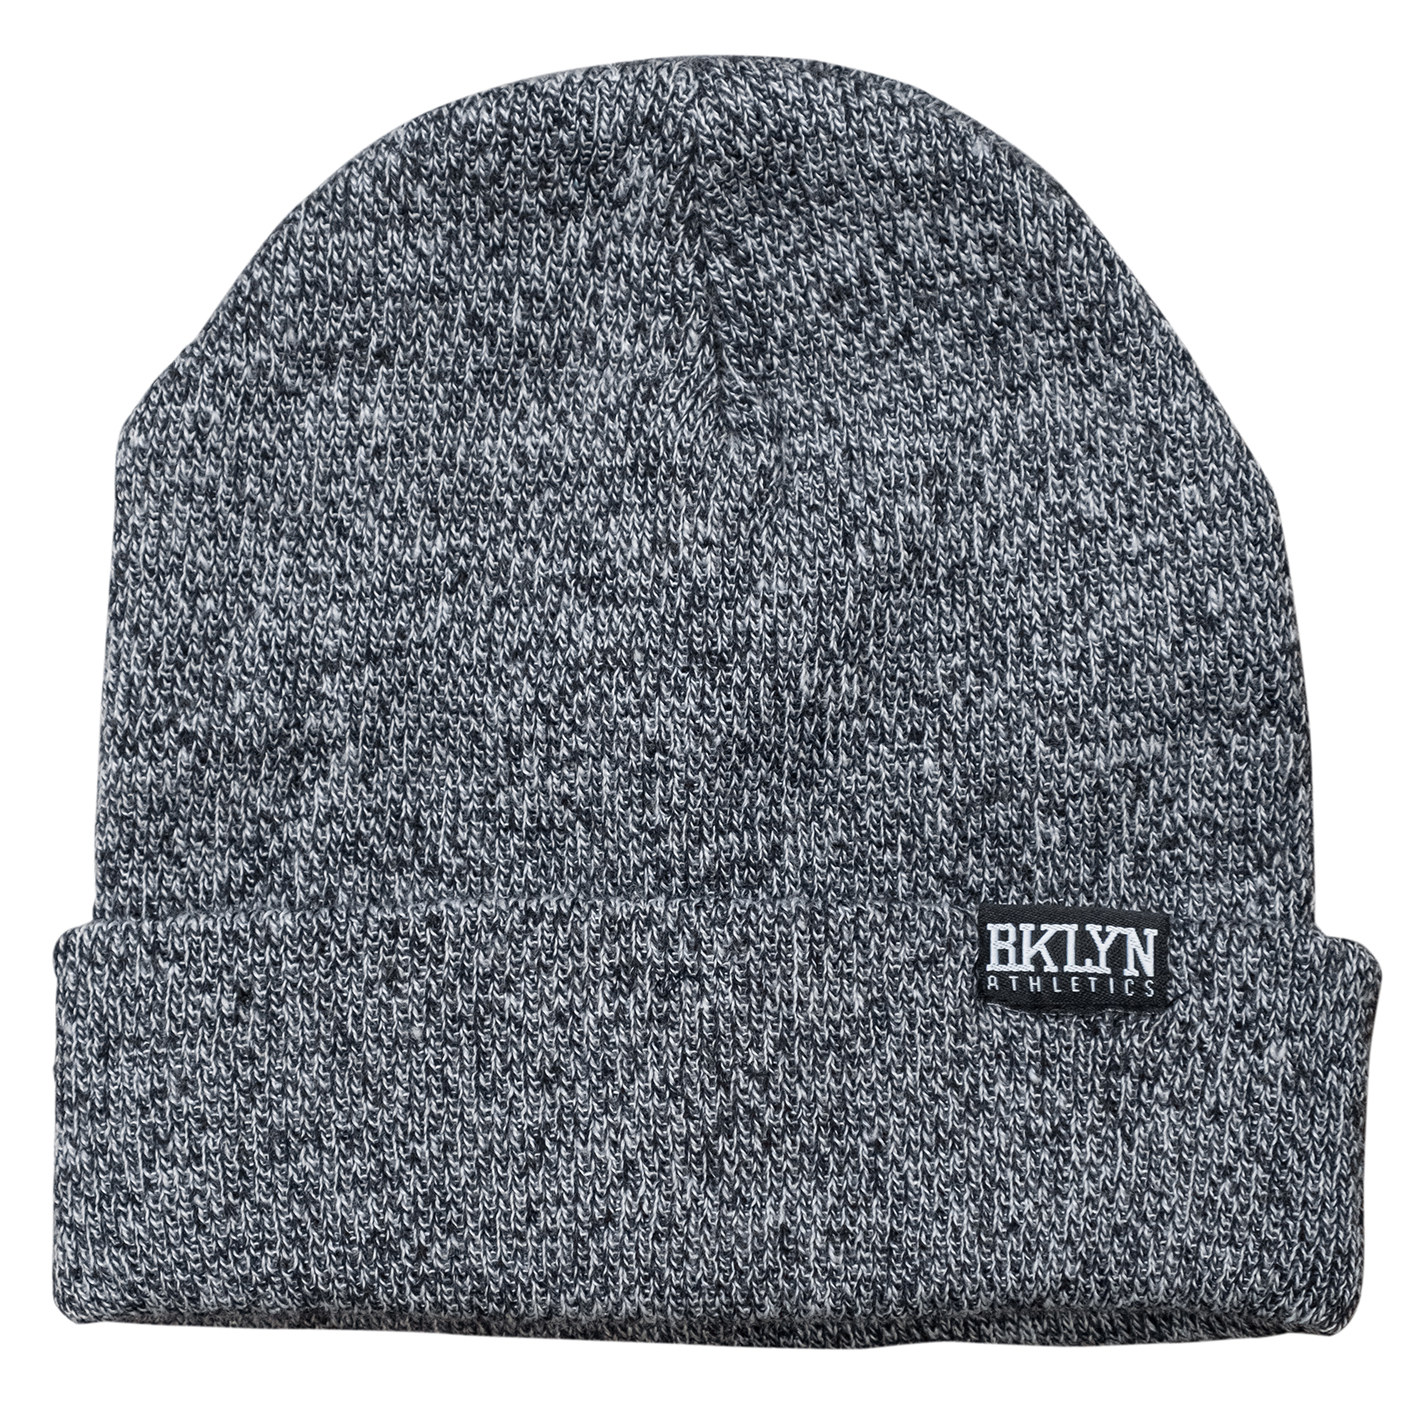 Brooklyn Athletics Unisex Adult Knit Marl Cuffed Slouchy Beanie Hat Cap One  Size. click to enlarge 1e8c9cb34